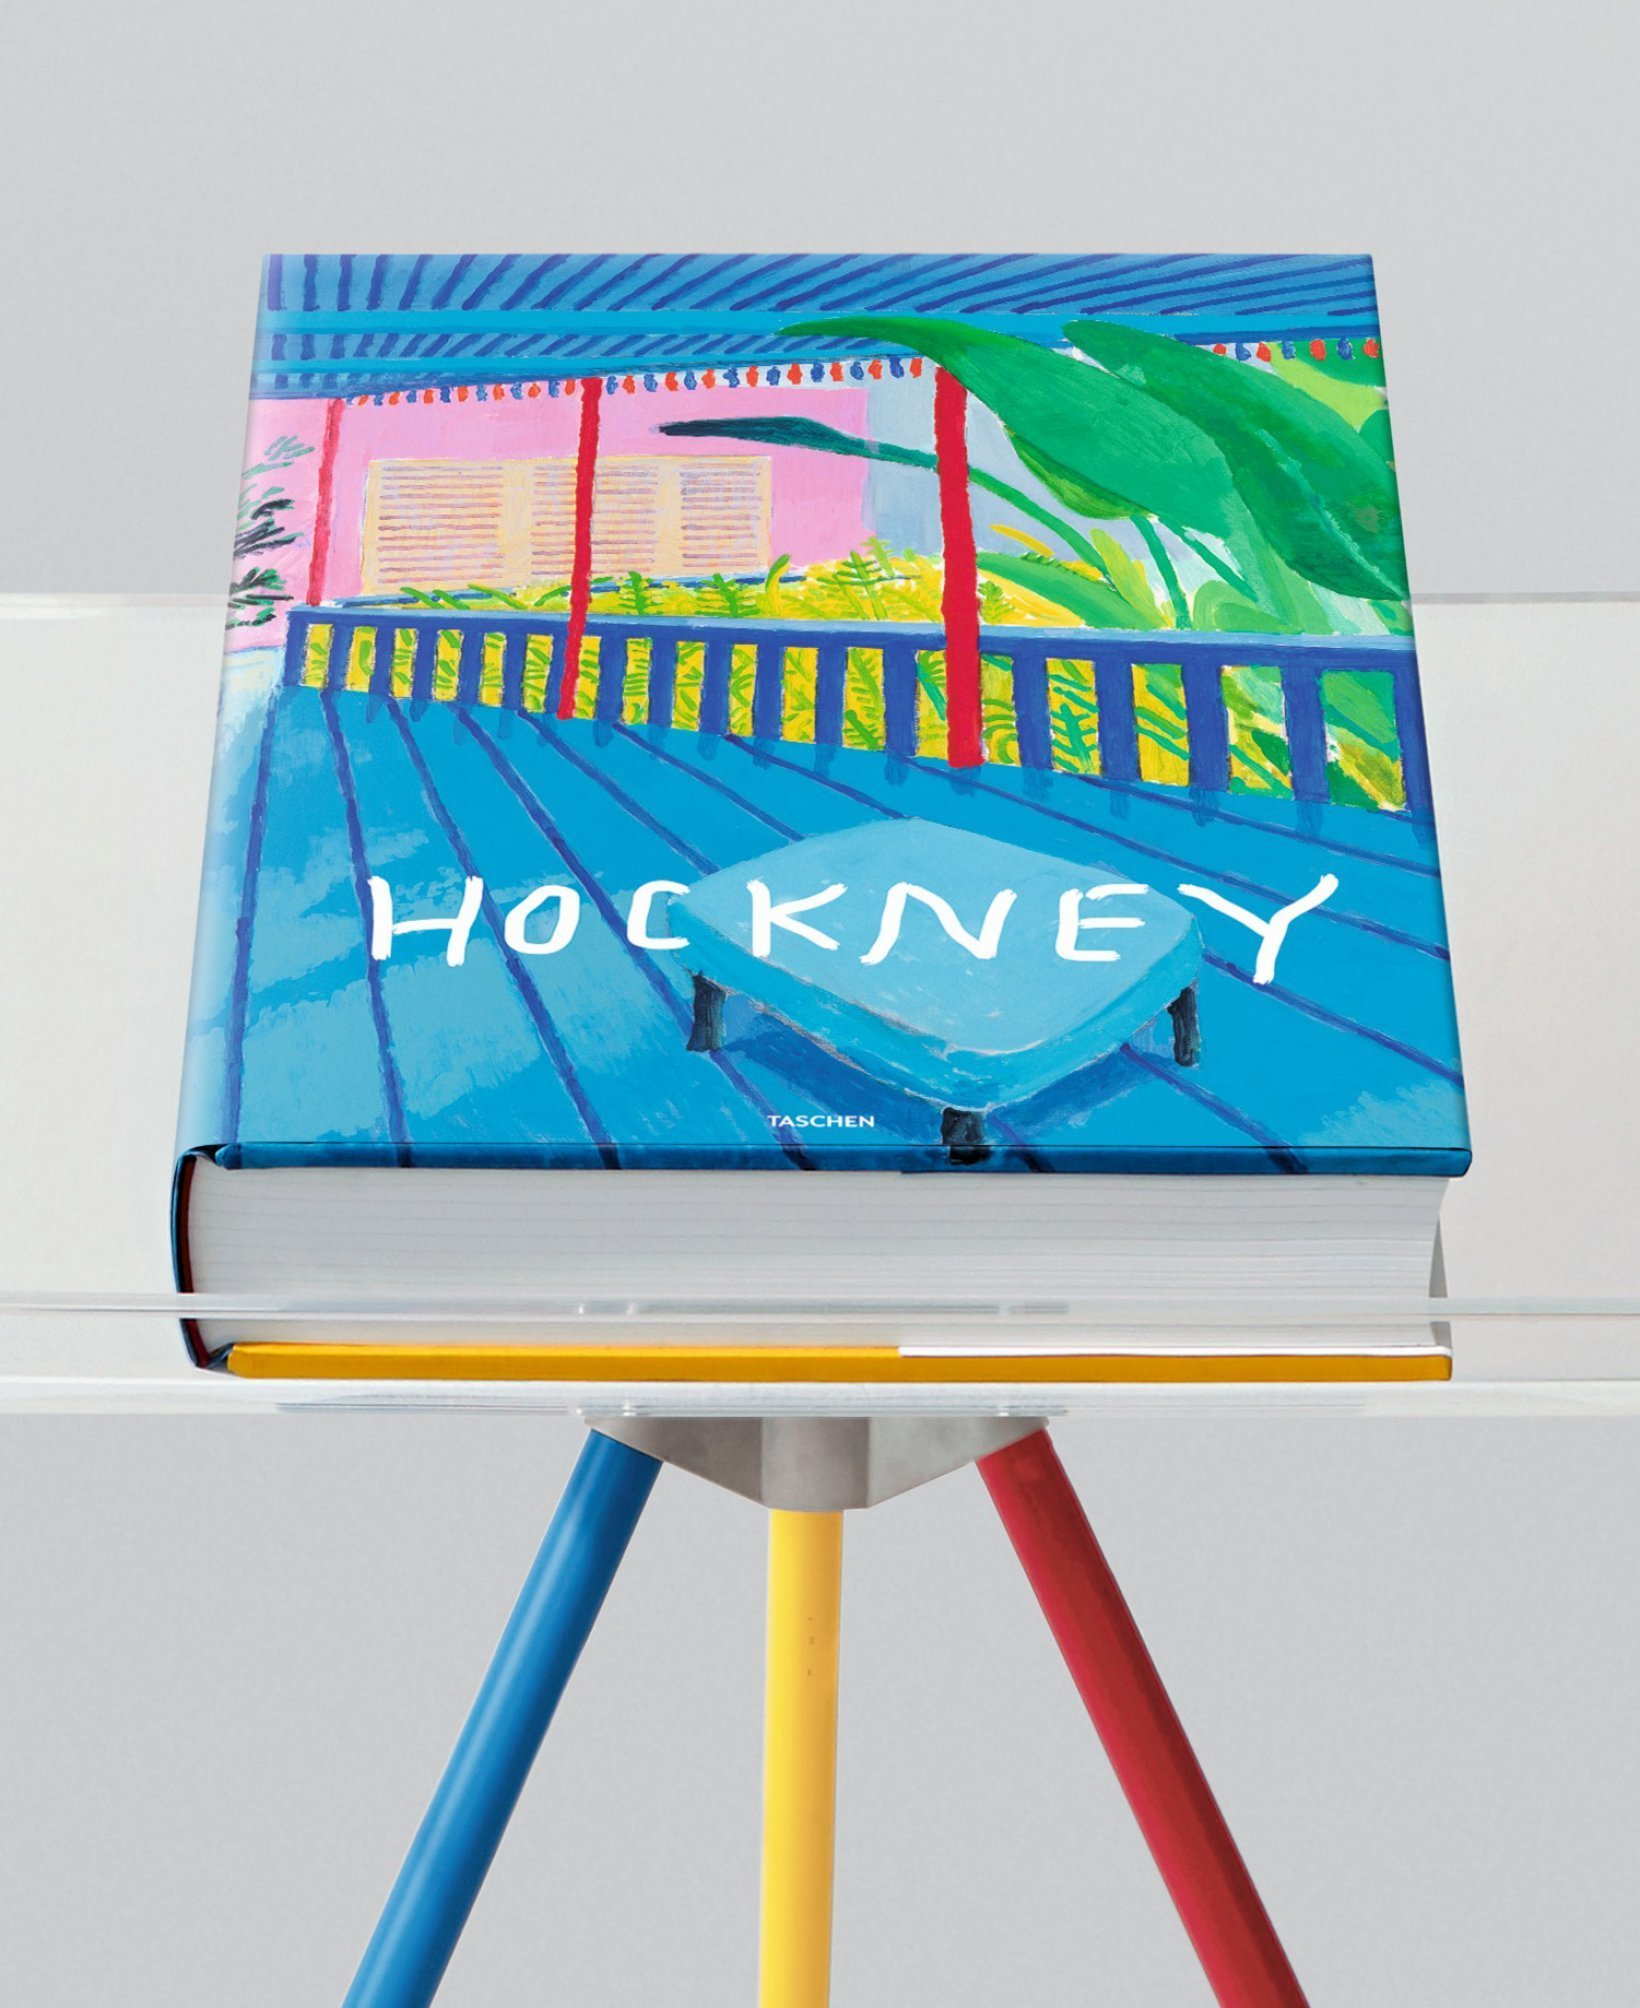 su-hockney_art_c-image_01_02644.jpg